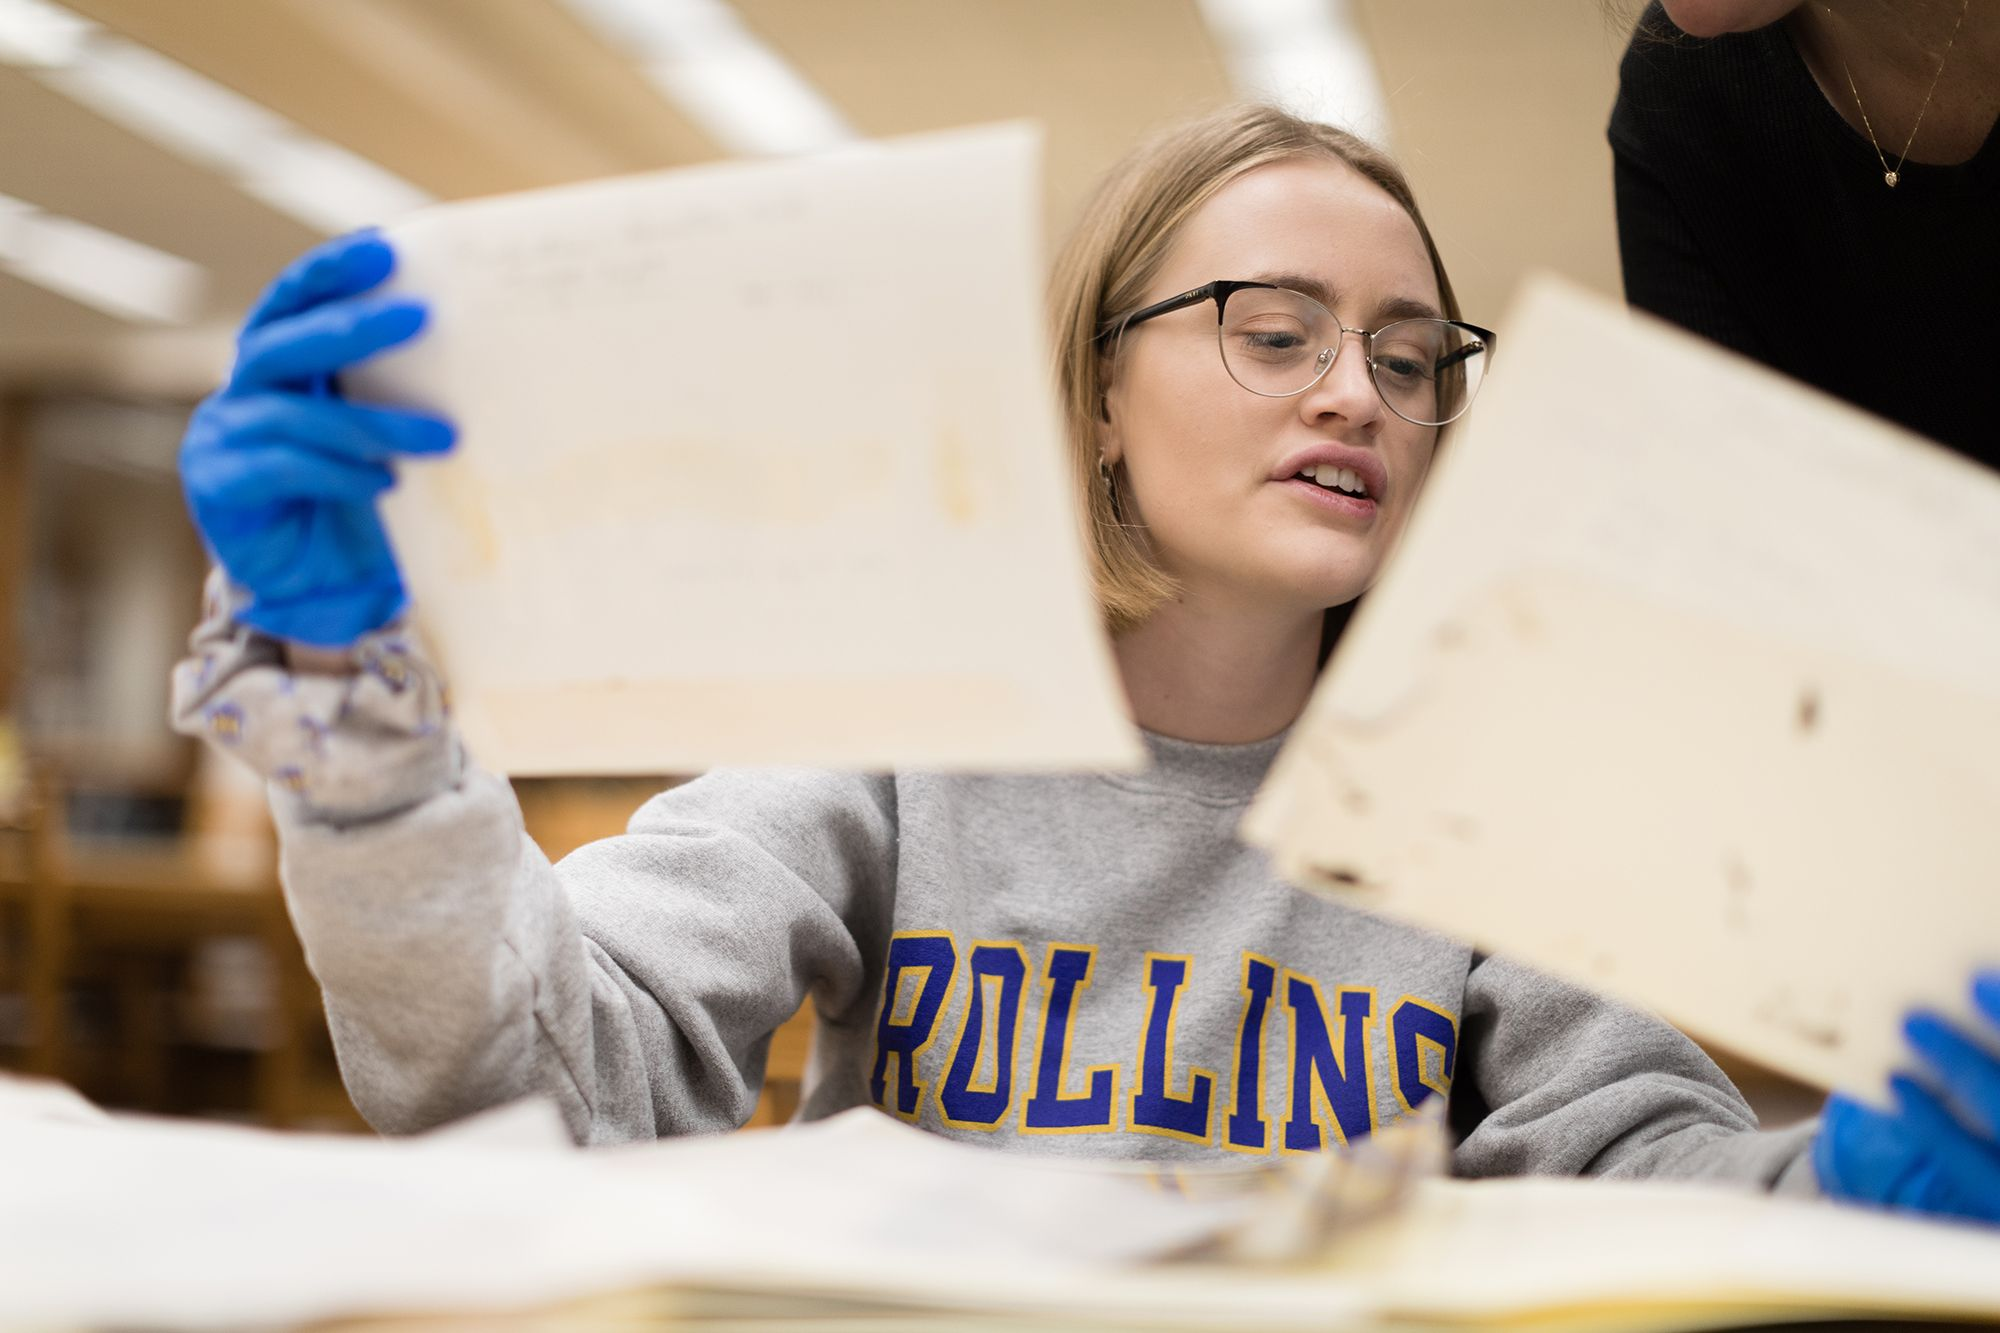 A college student is holding up historical documents in each hand while wearing protective gloves.